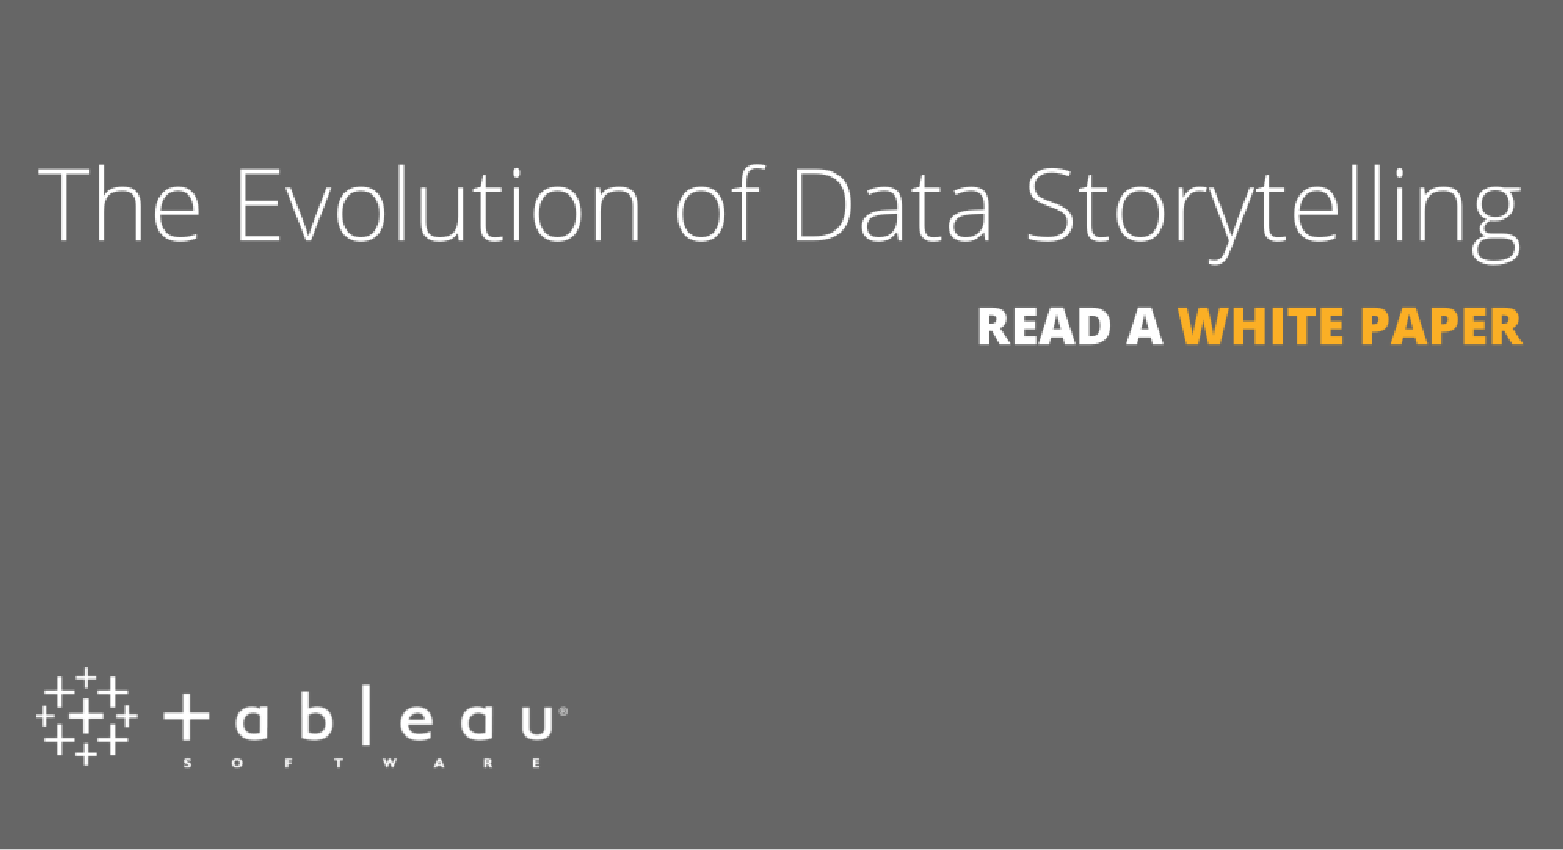 The Evolution of Data Storytelling